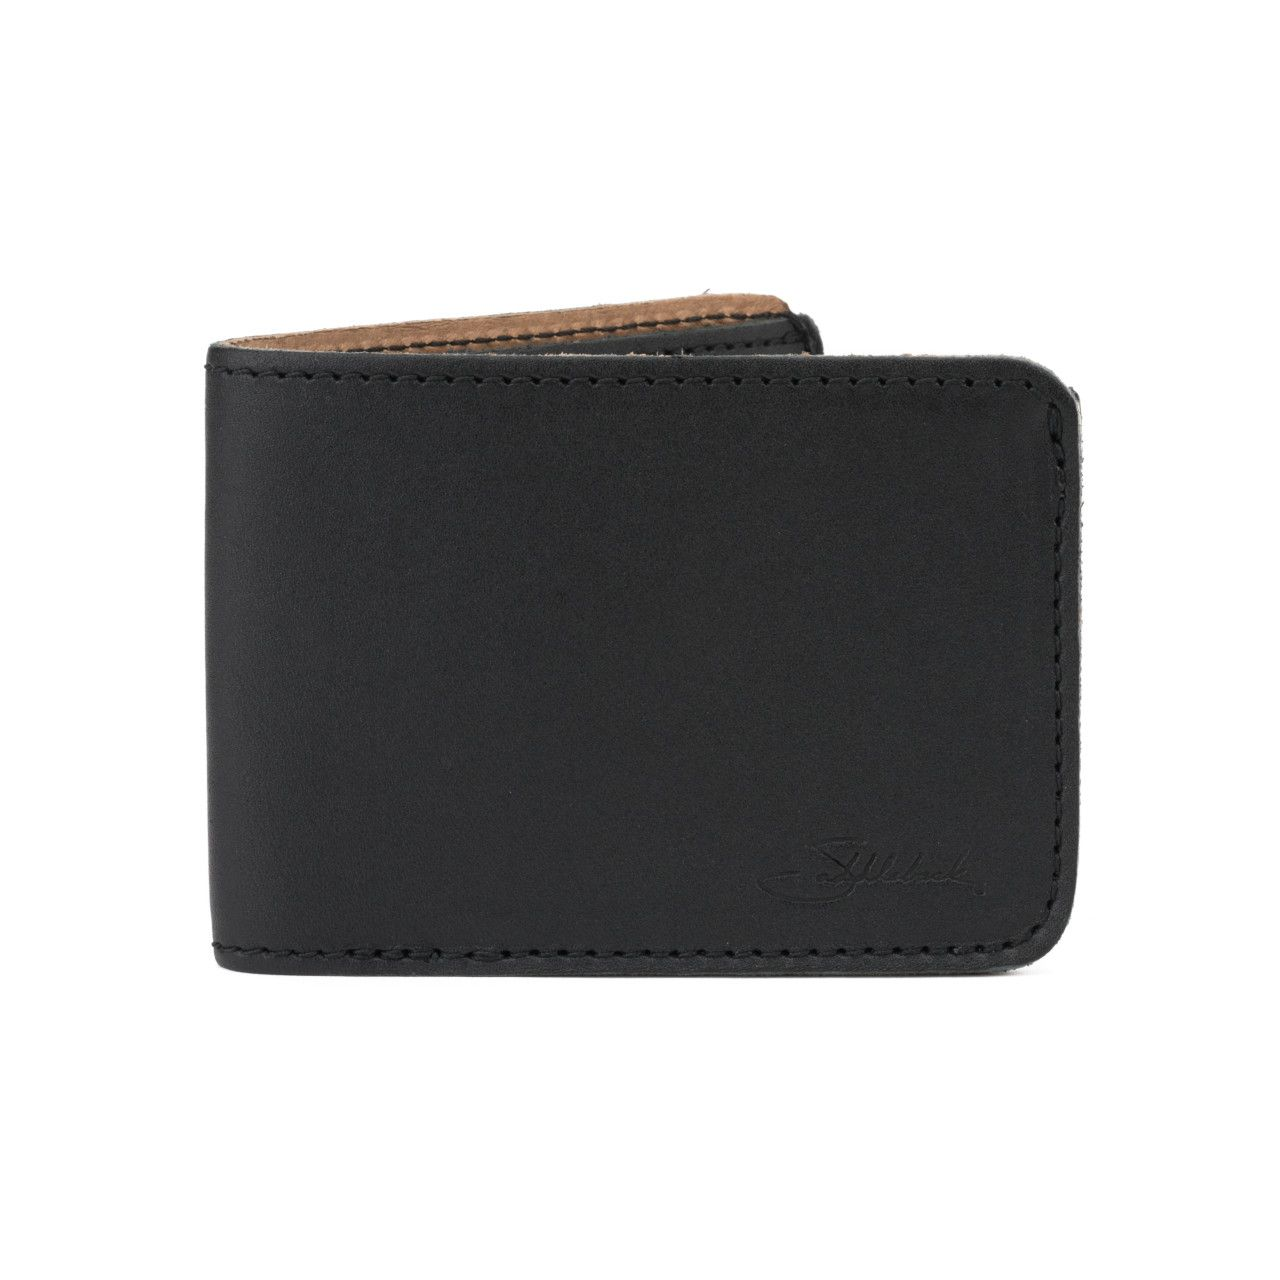 small leather bifold wallet small in black leather